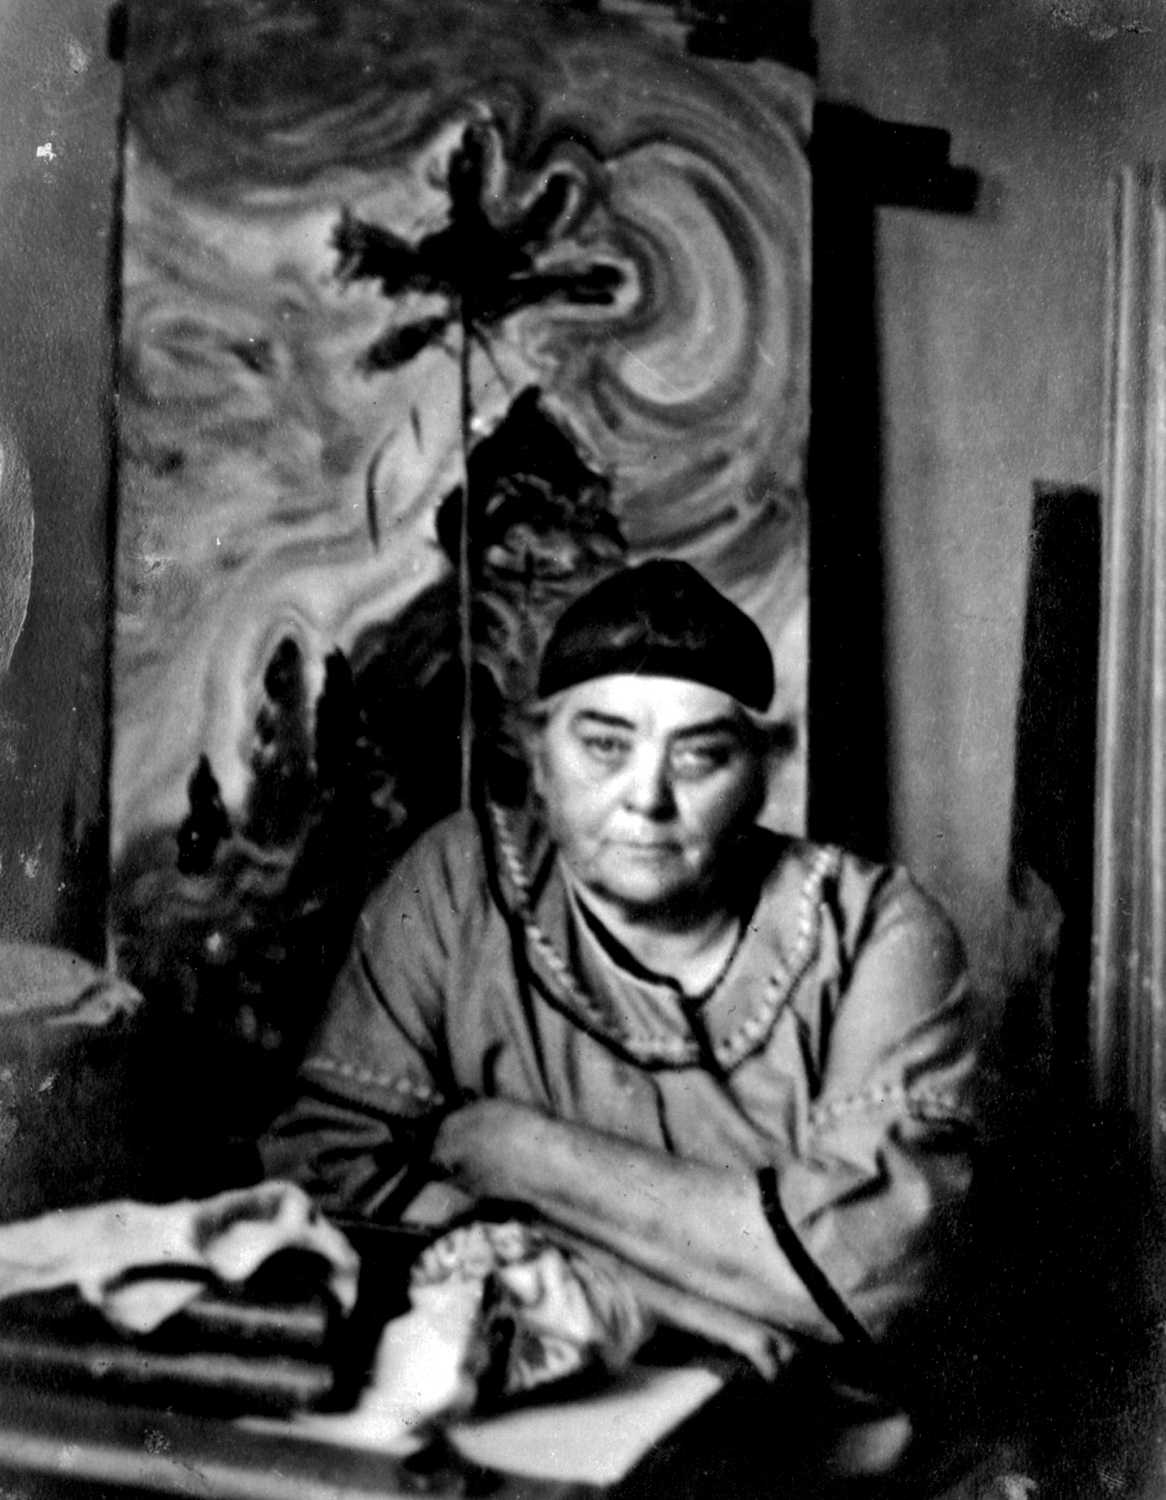 Emily Carr Born: December 13, 1871 Died: March 2, 1945